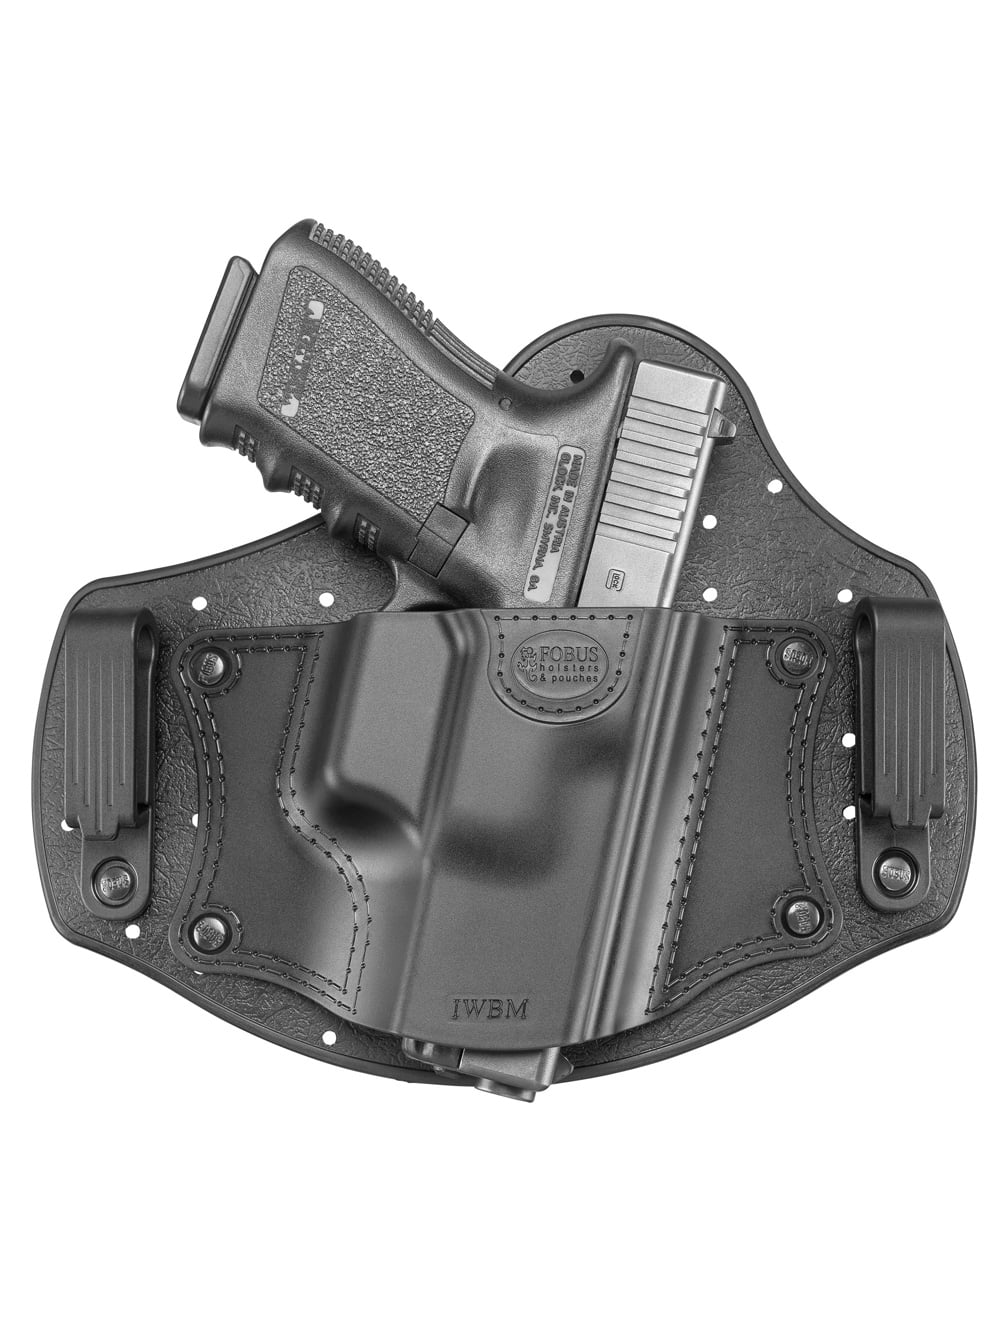 Fobus SW-357 Paddle Holster Smith/&Wesson 357 Erma EGR 66 Weihrauch HW37